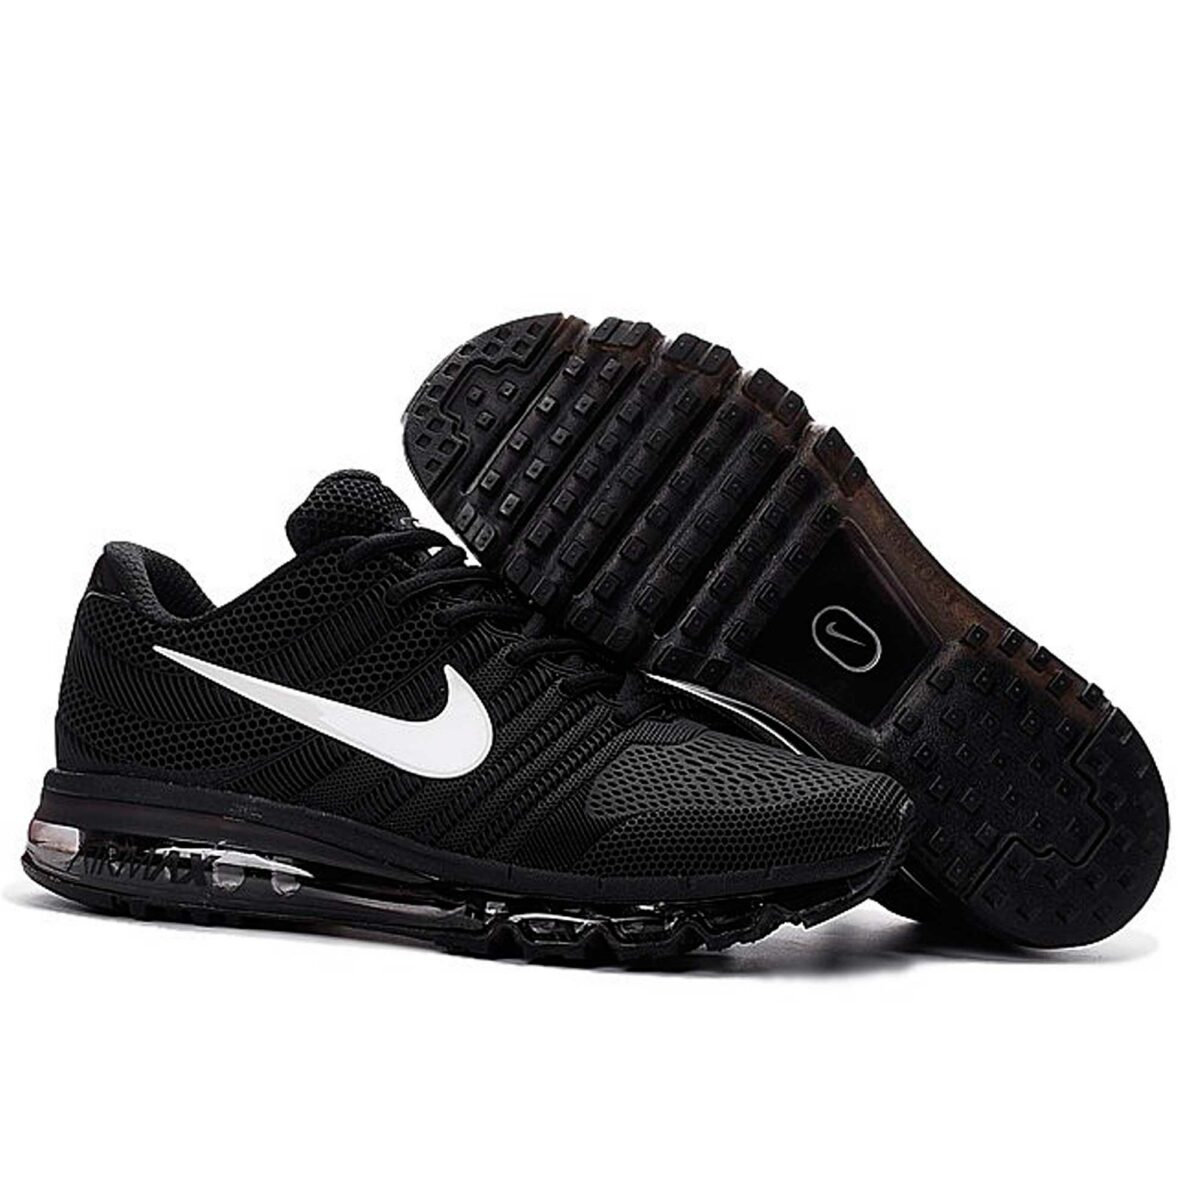 nike air max 2017 KPU triple black 849560-701 купить